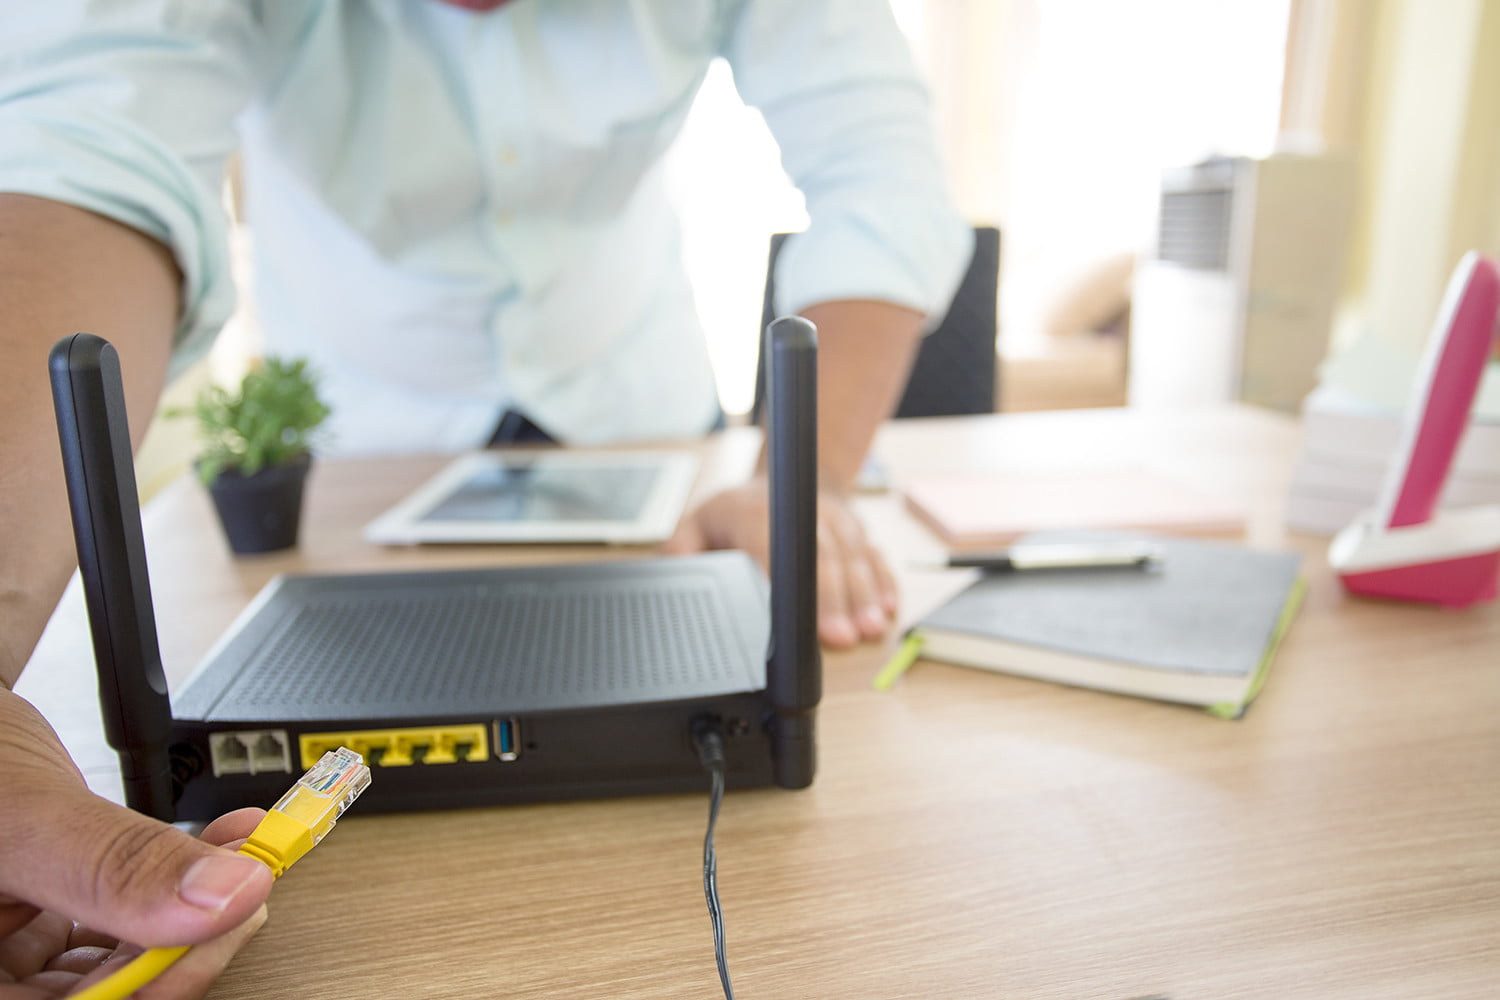 the fbi wants you to reboot your router insecure getty